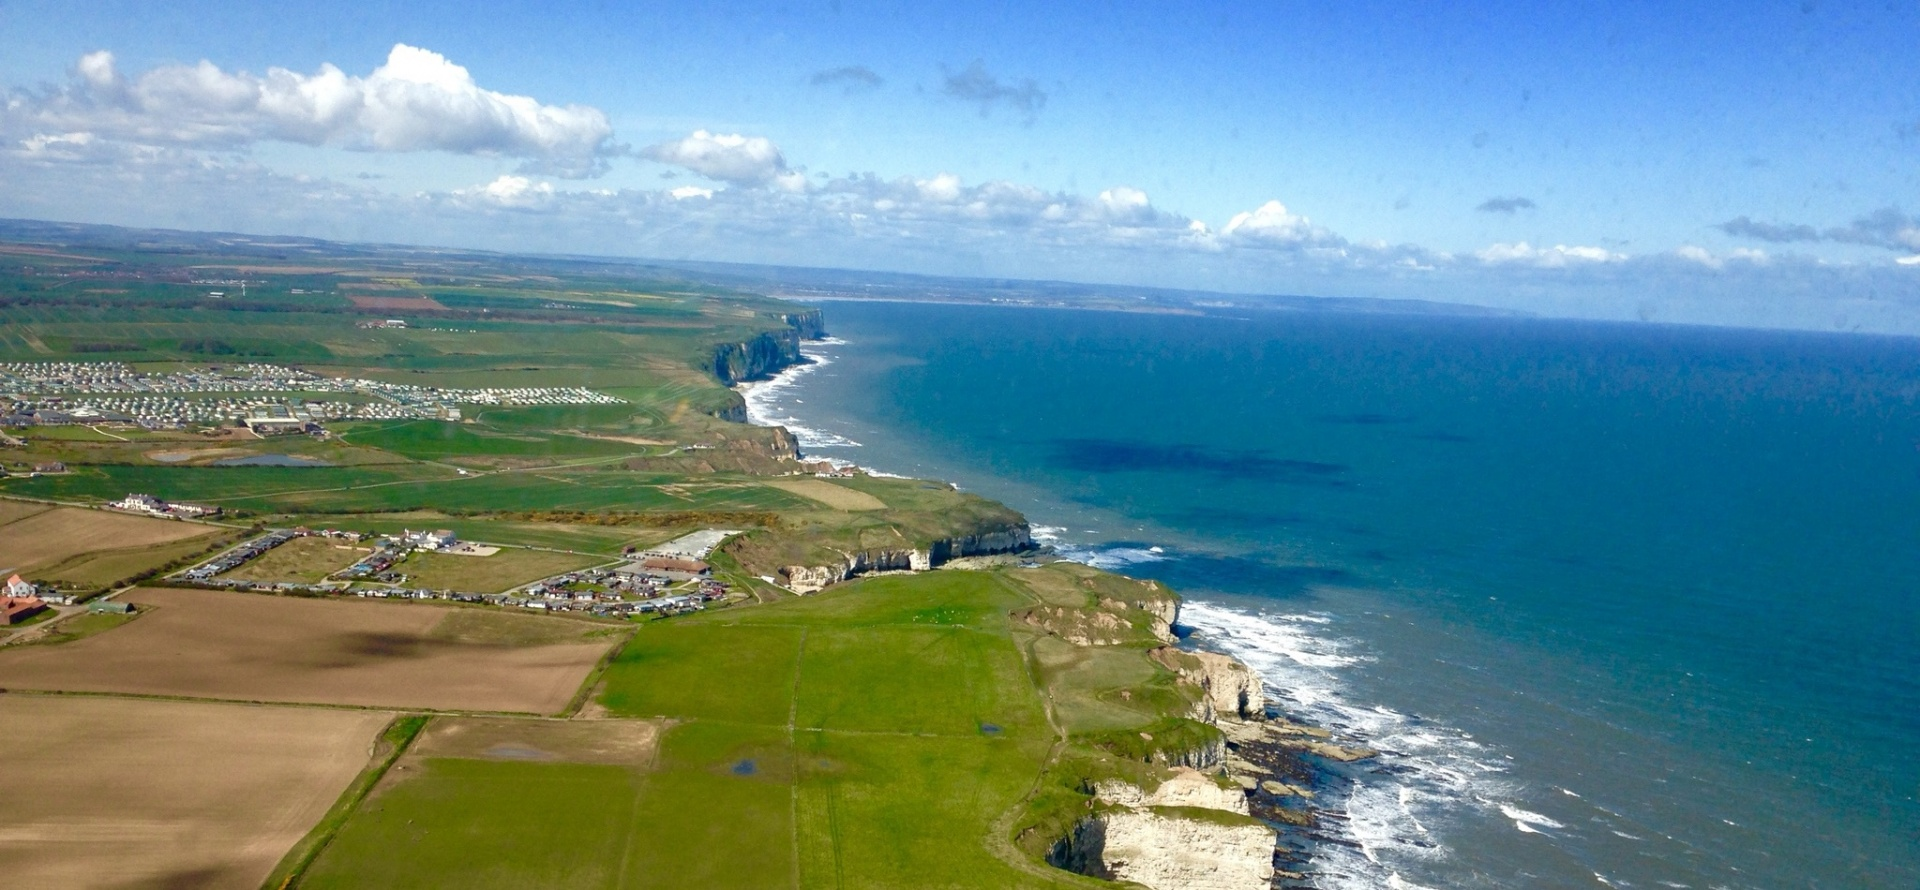 North East Yorkshire Coastal Helicopter Tour